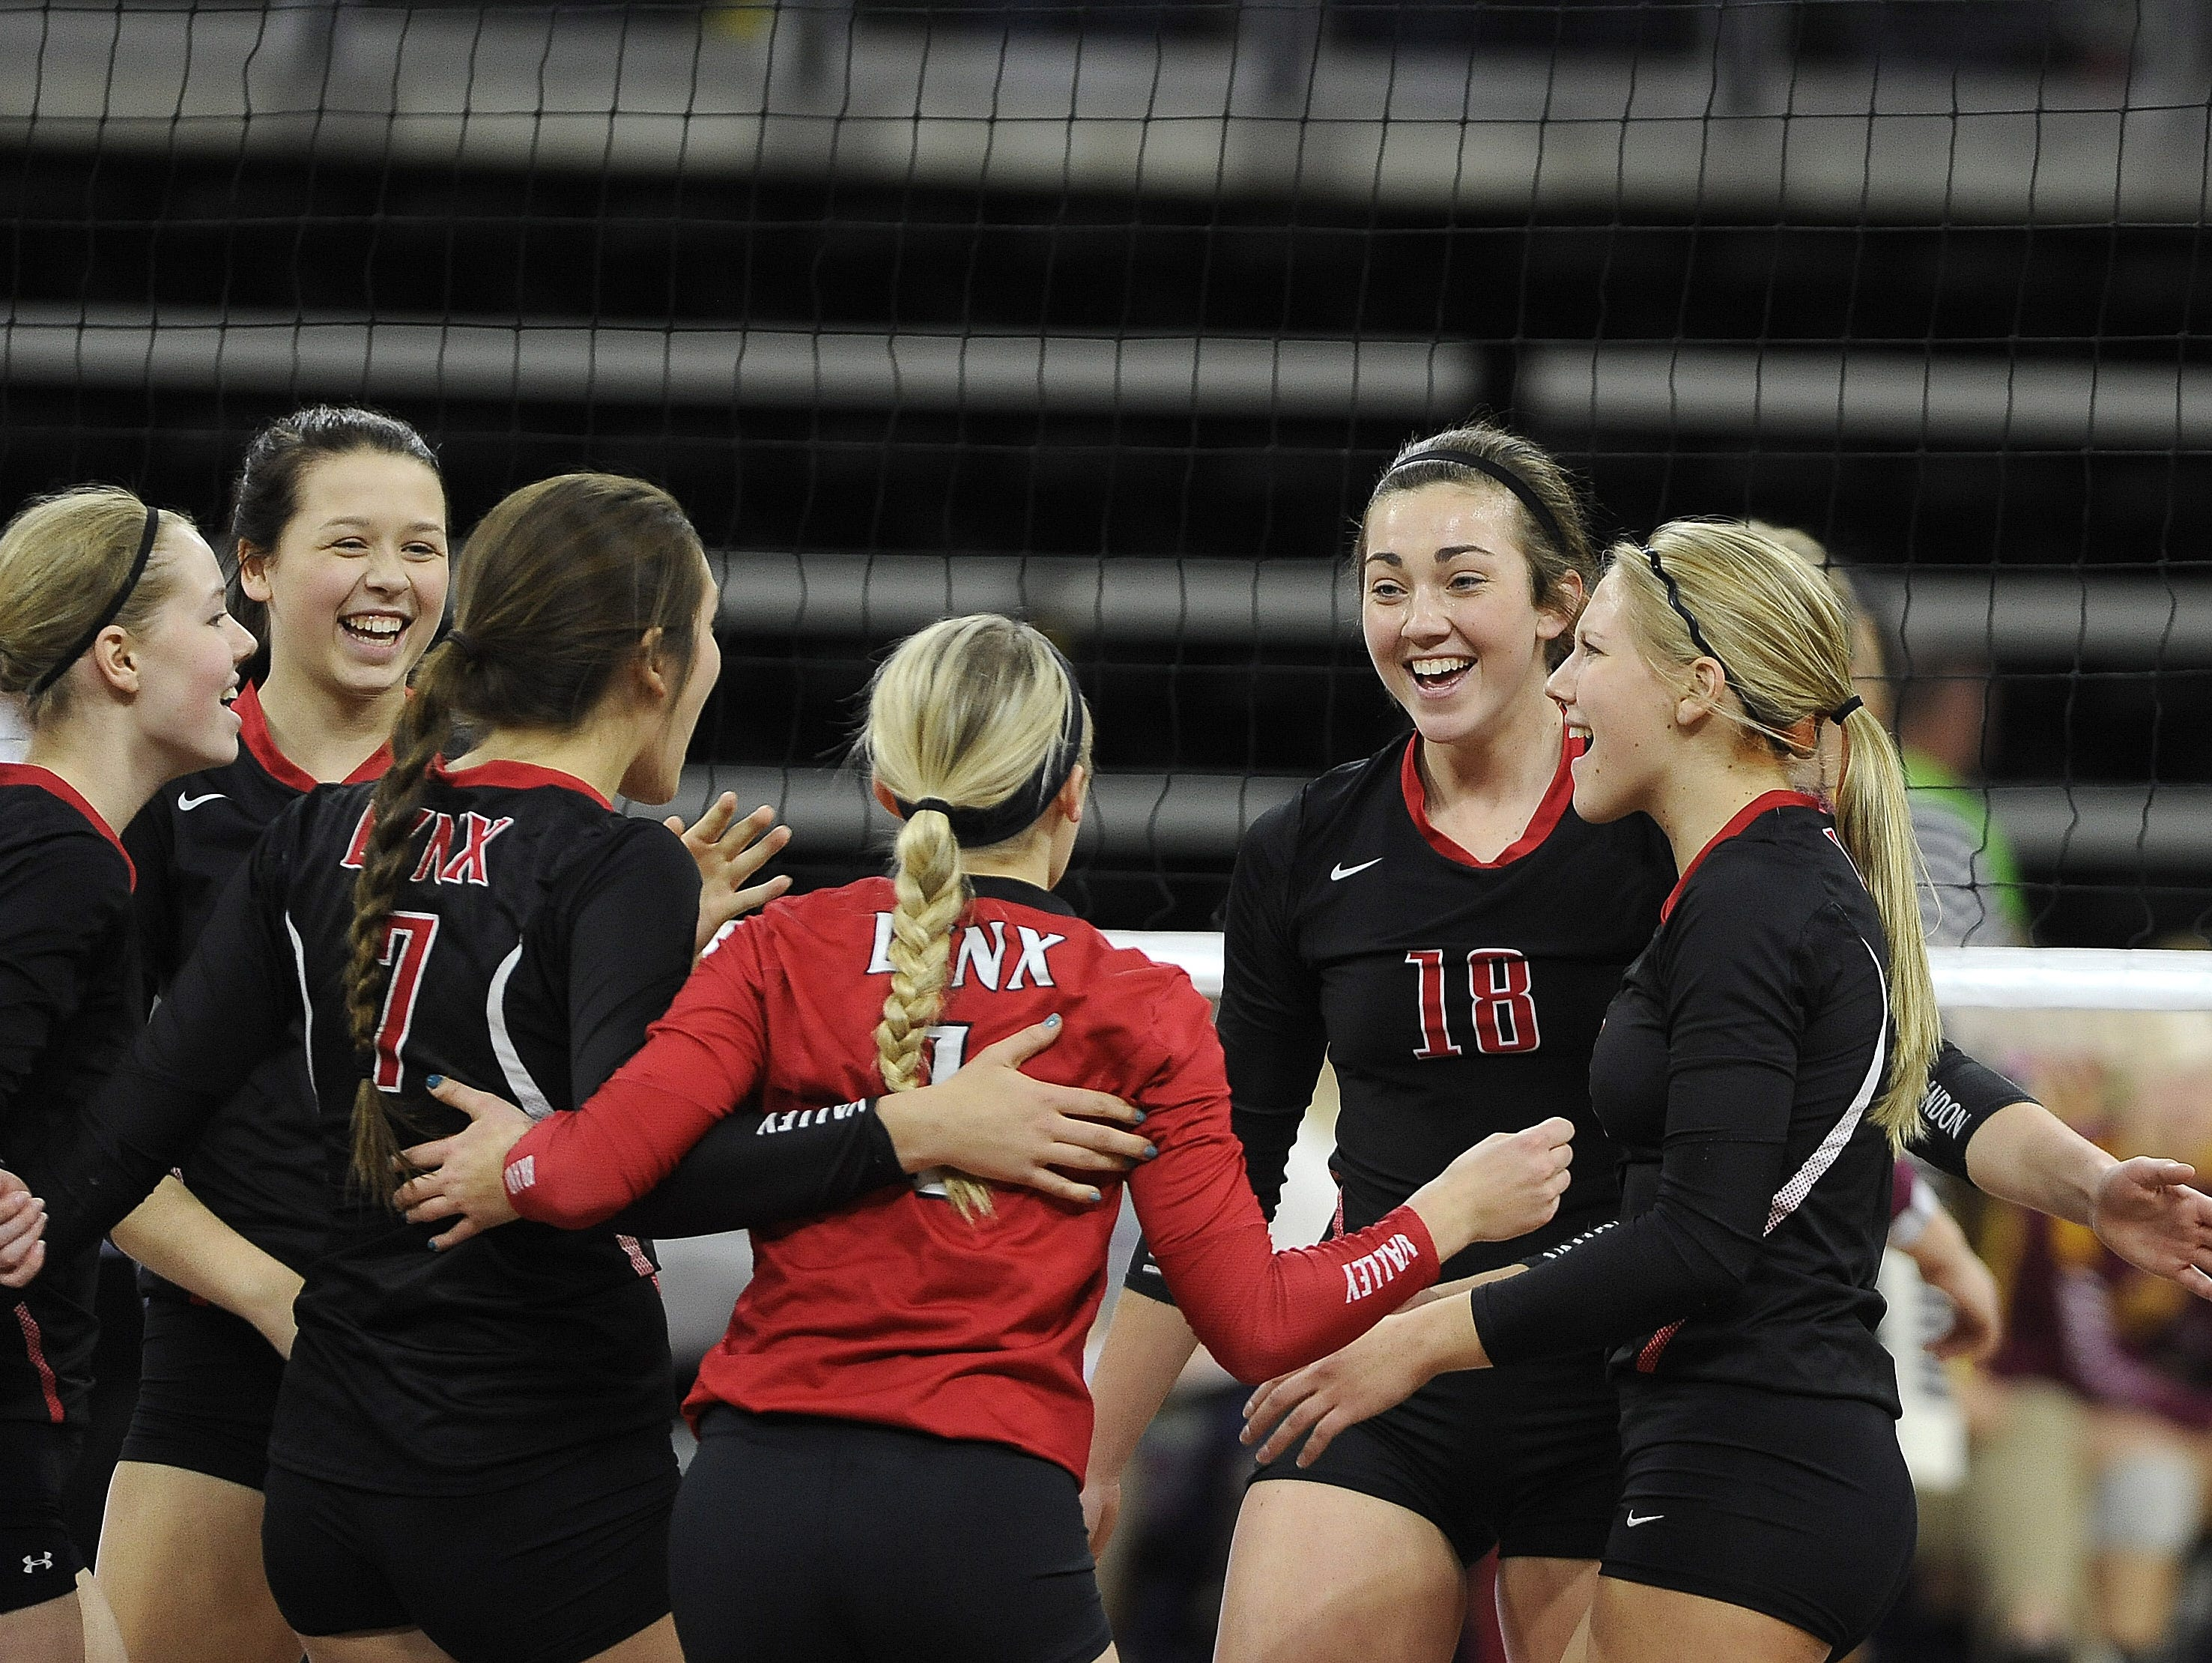 Brandon Valley celebrates scoring against Roosevelt during state volleyball action at the Denny Sanford Premier Center in Sioux Falls, S.D., Thursday, Nov. 19, 2015.